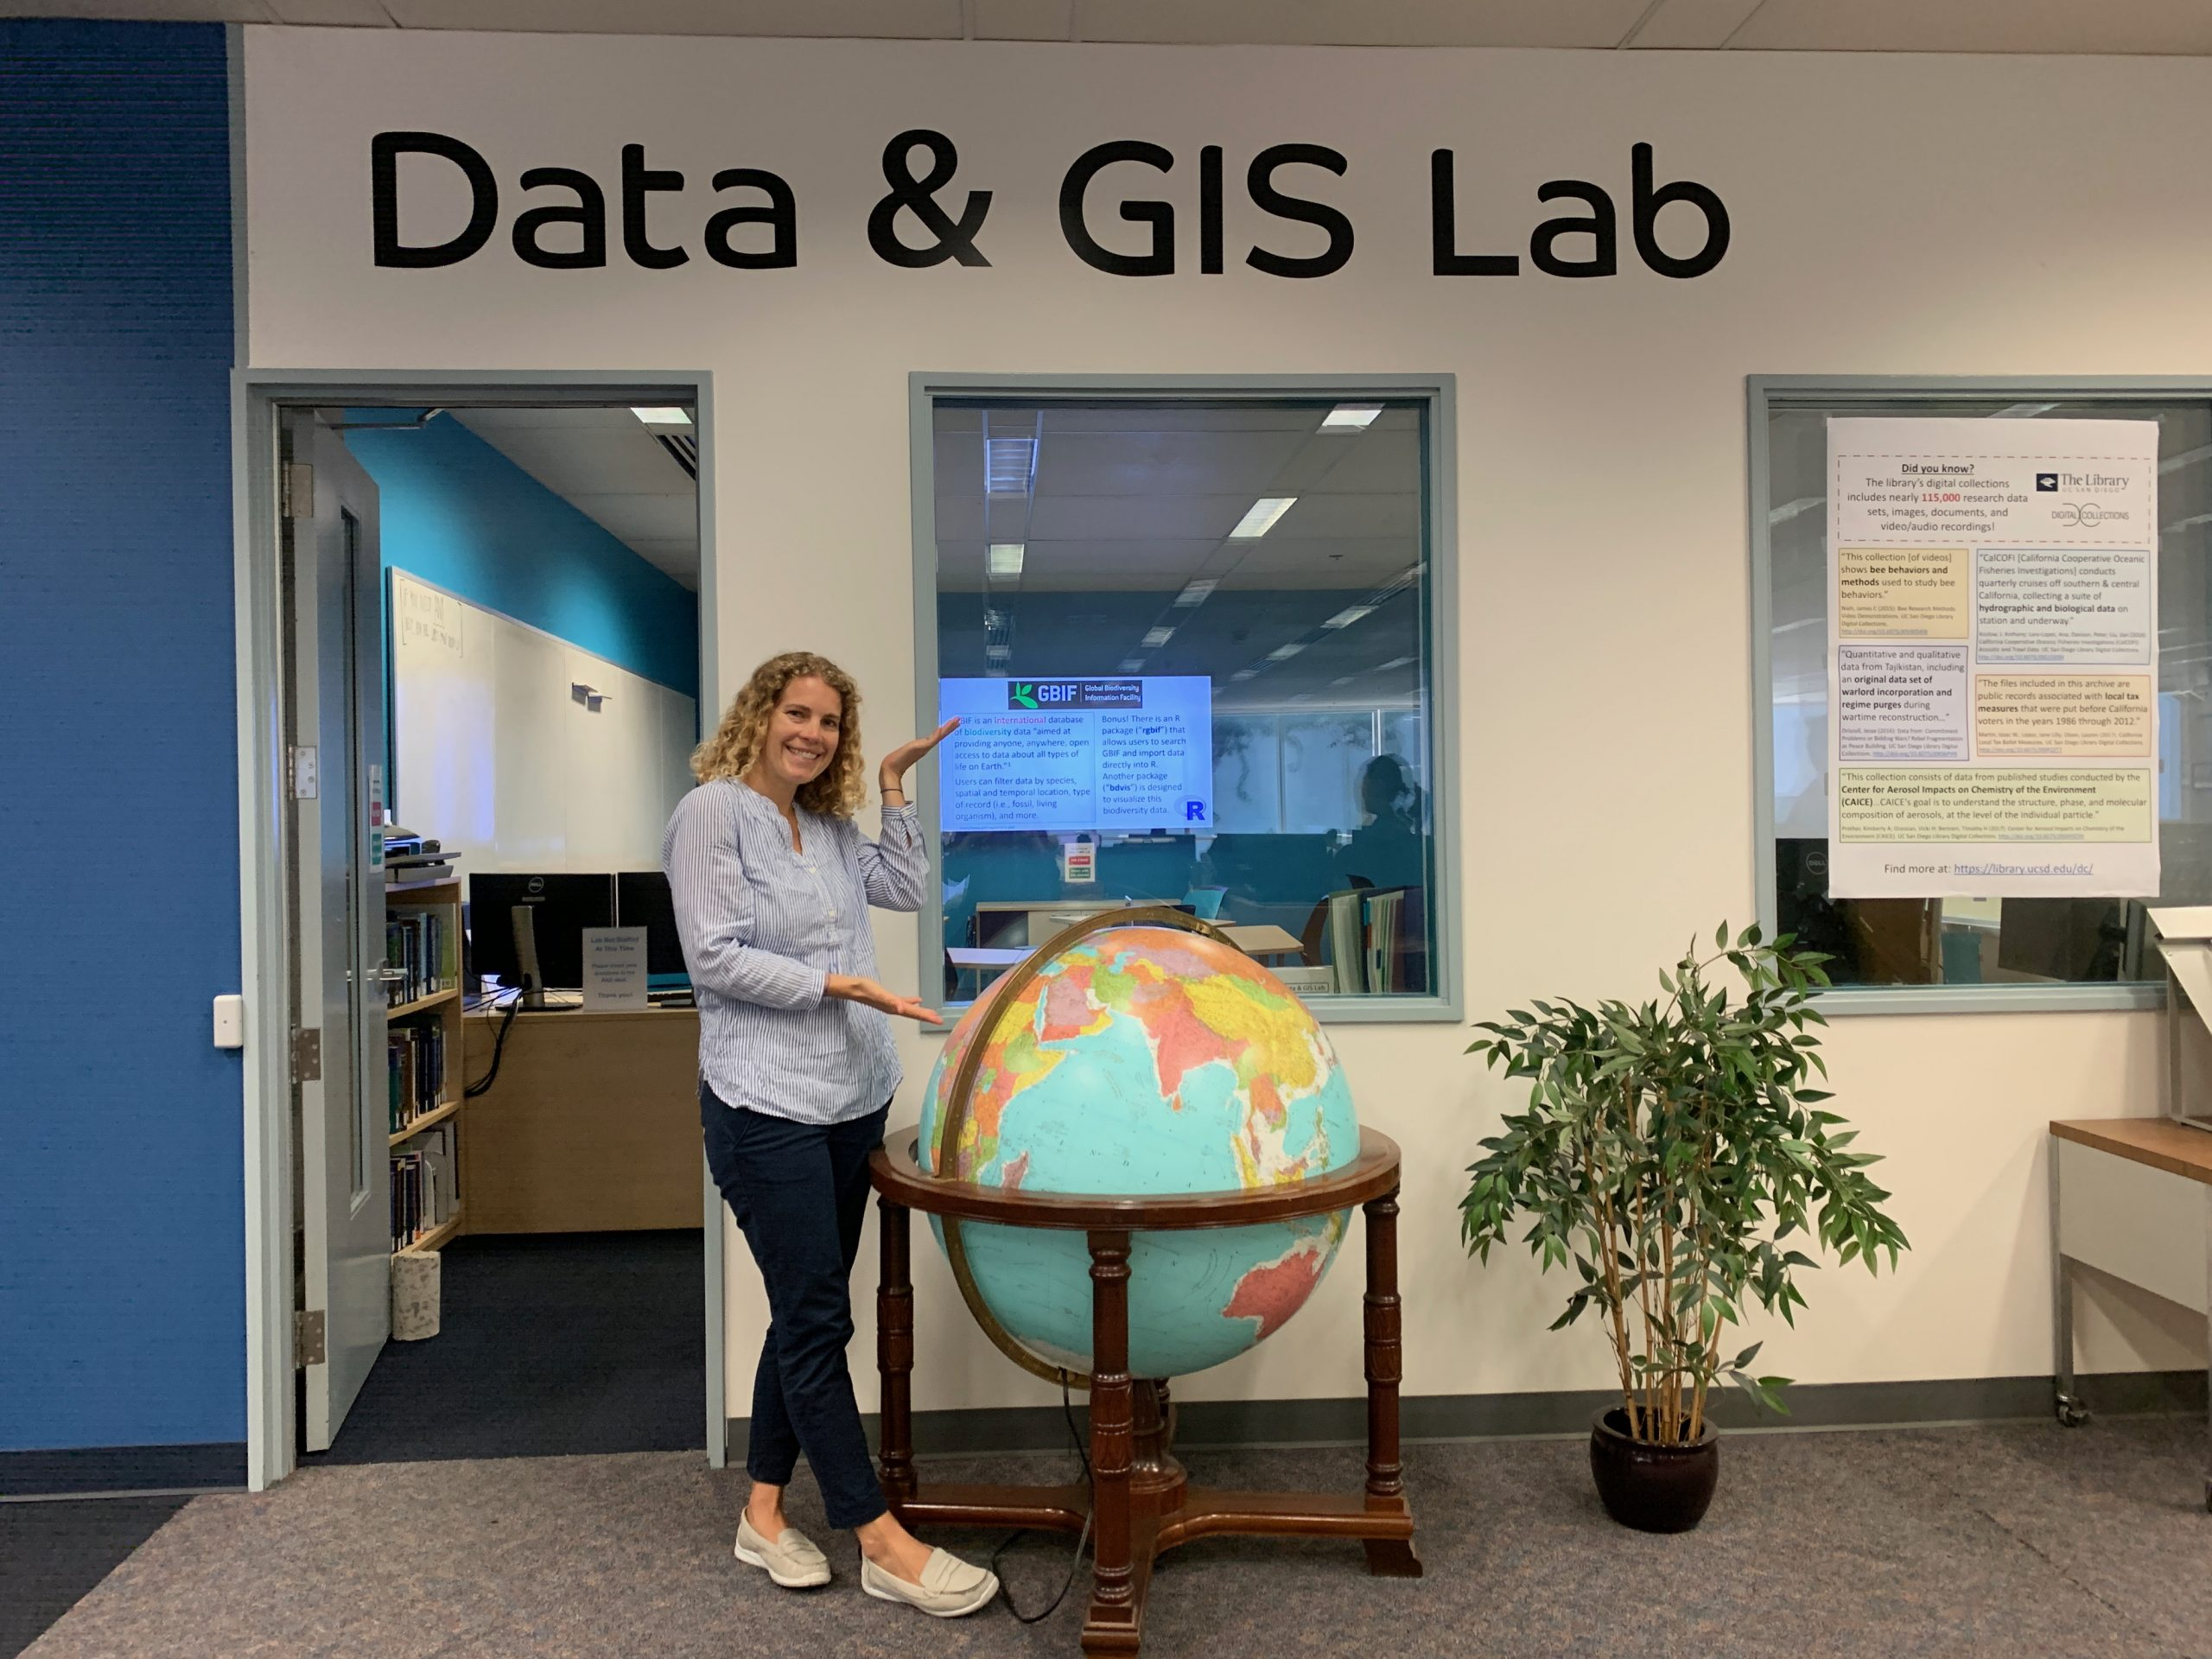 GIS Librarian Amy Work standing in front of the Data & GIS Lab, located on the main floor of Geisel Library